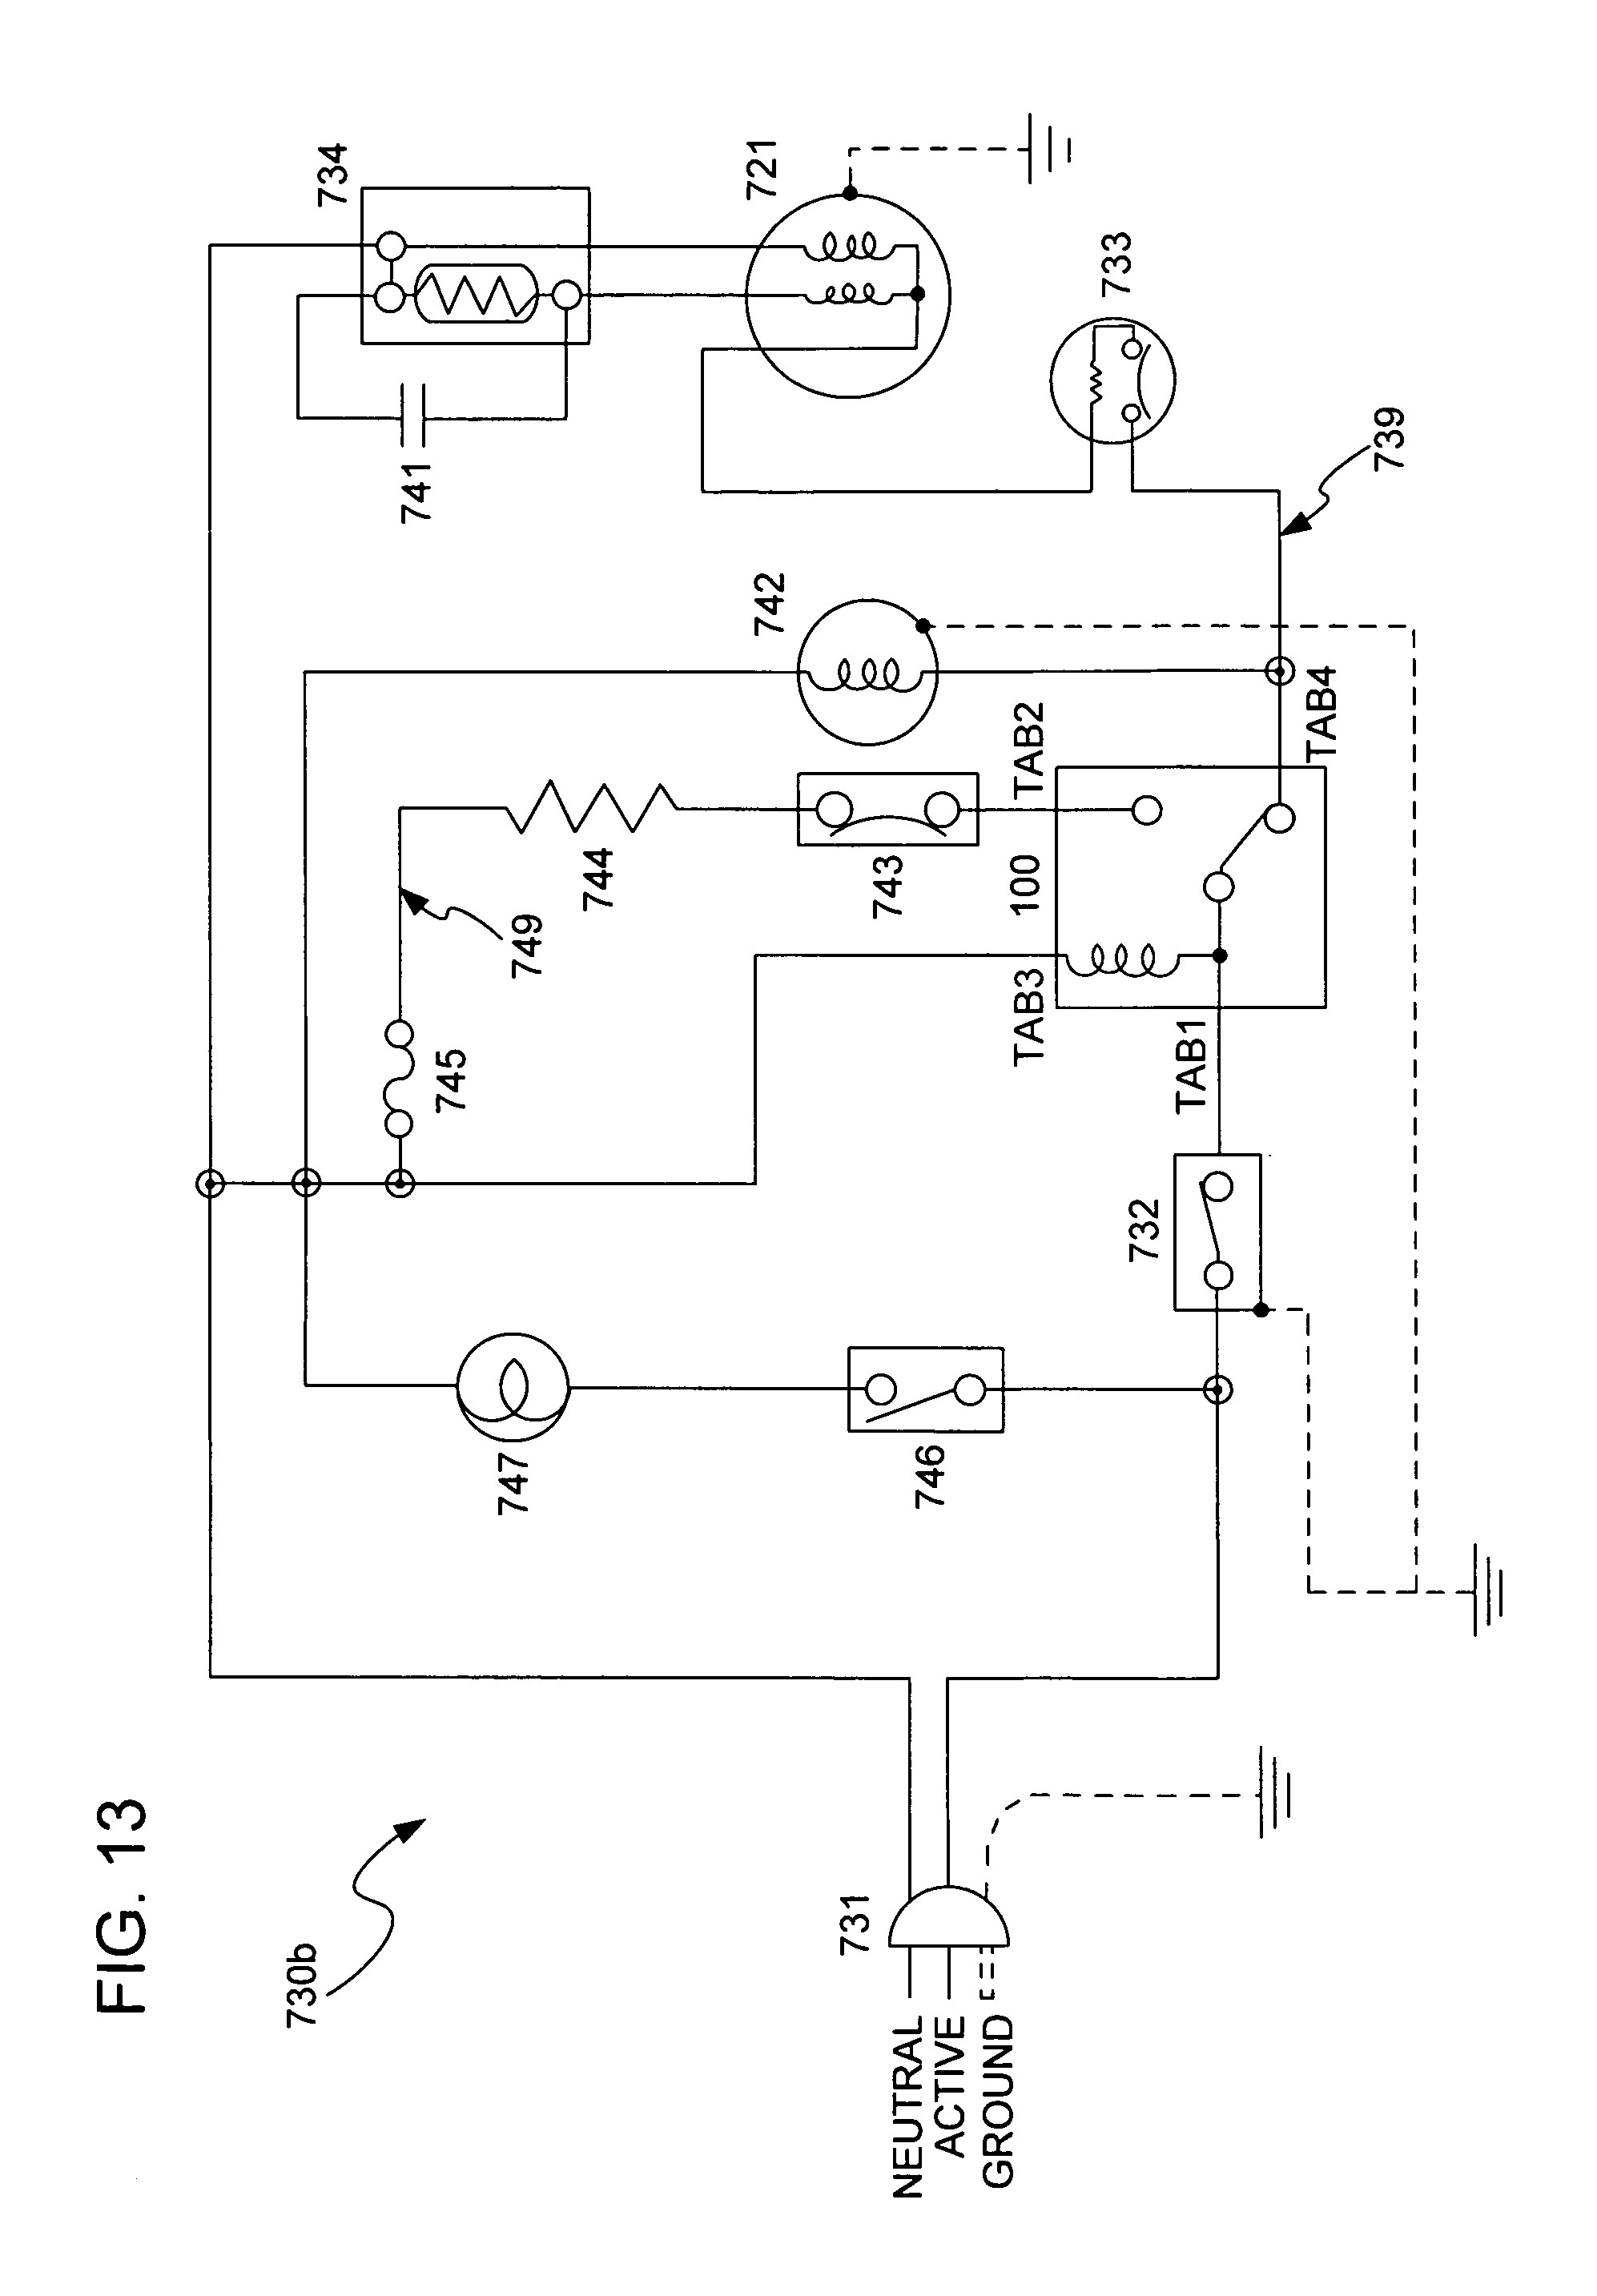 small resolution of hvac defrost timer wiring wiring diagrams for your car or truckhvac control wiring diagram timer contactor